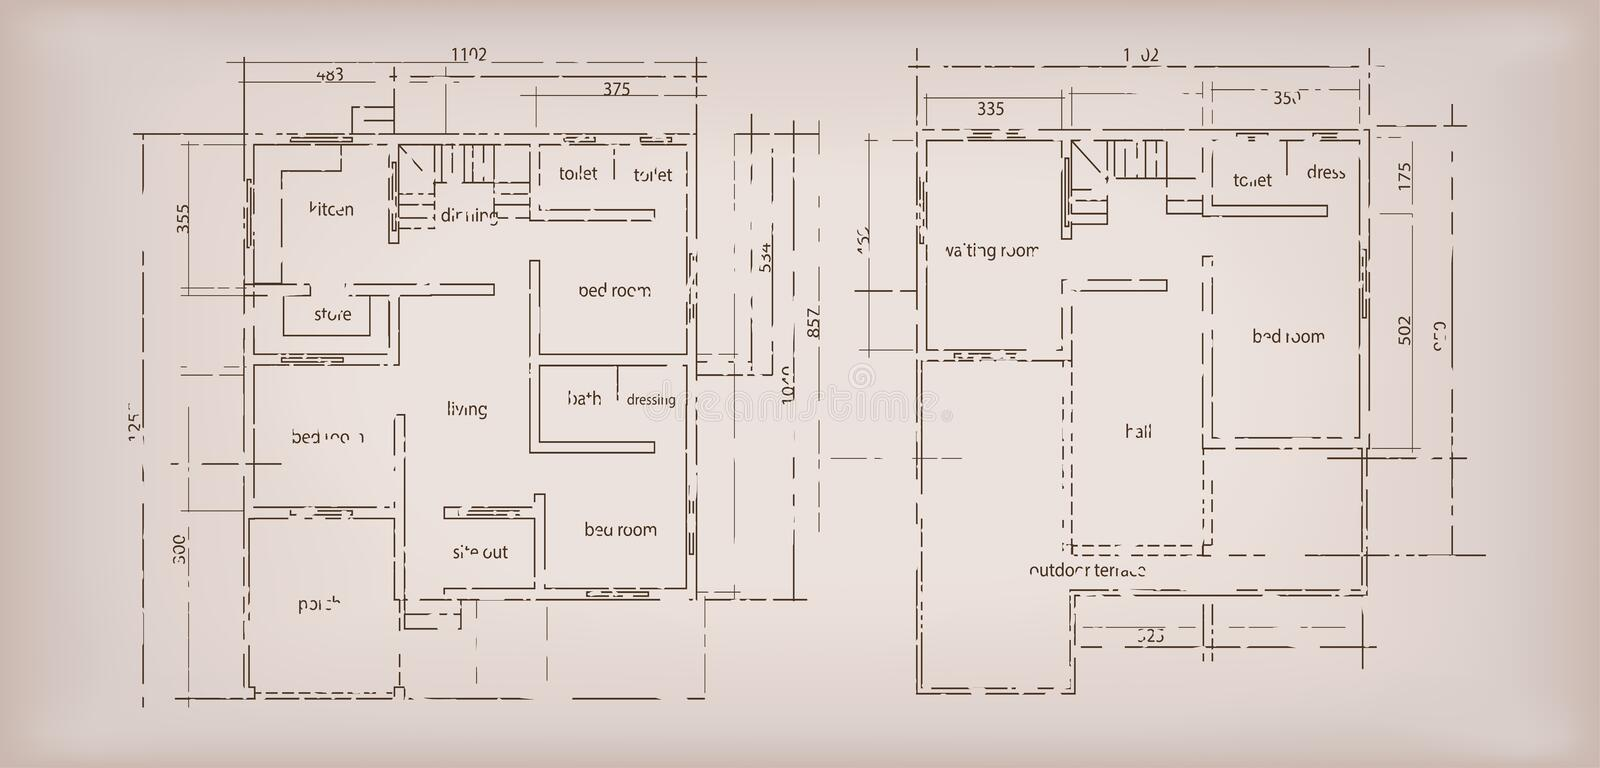 House Building Structure Sketch Plan Drawing Vintage Background